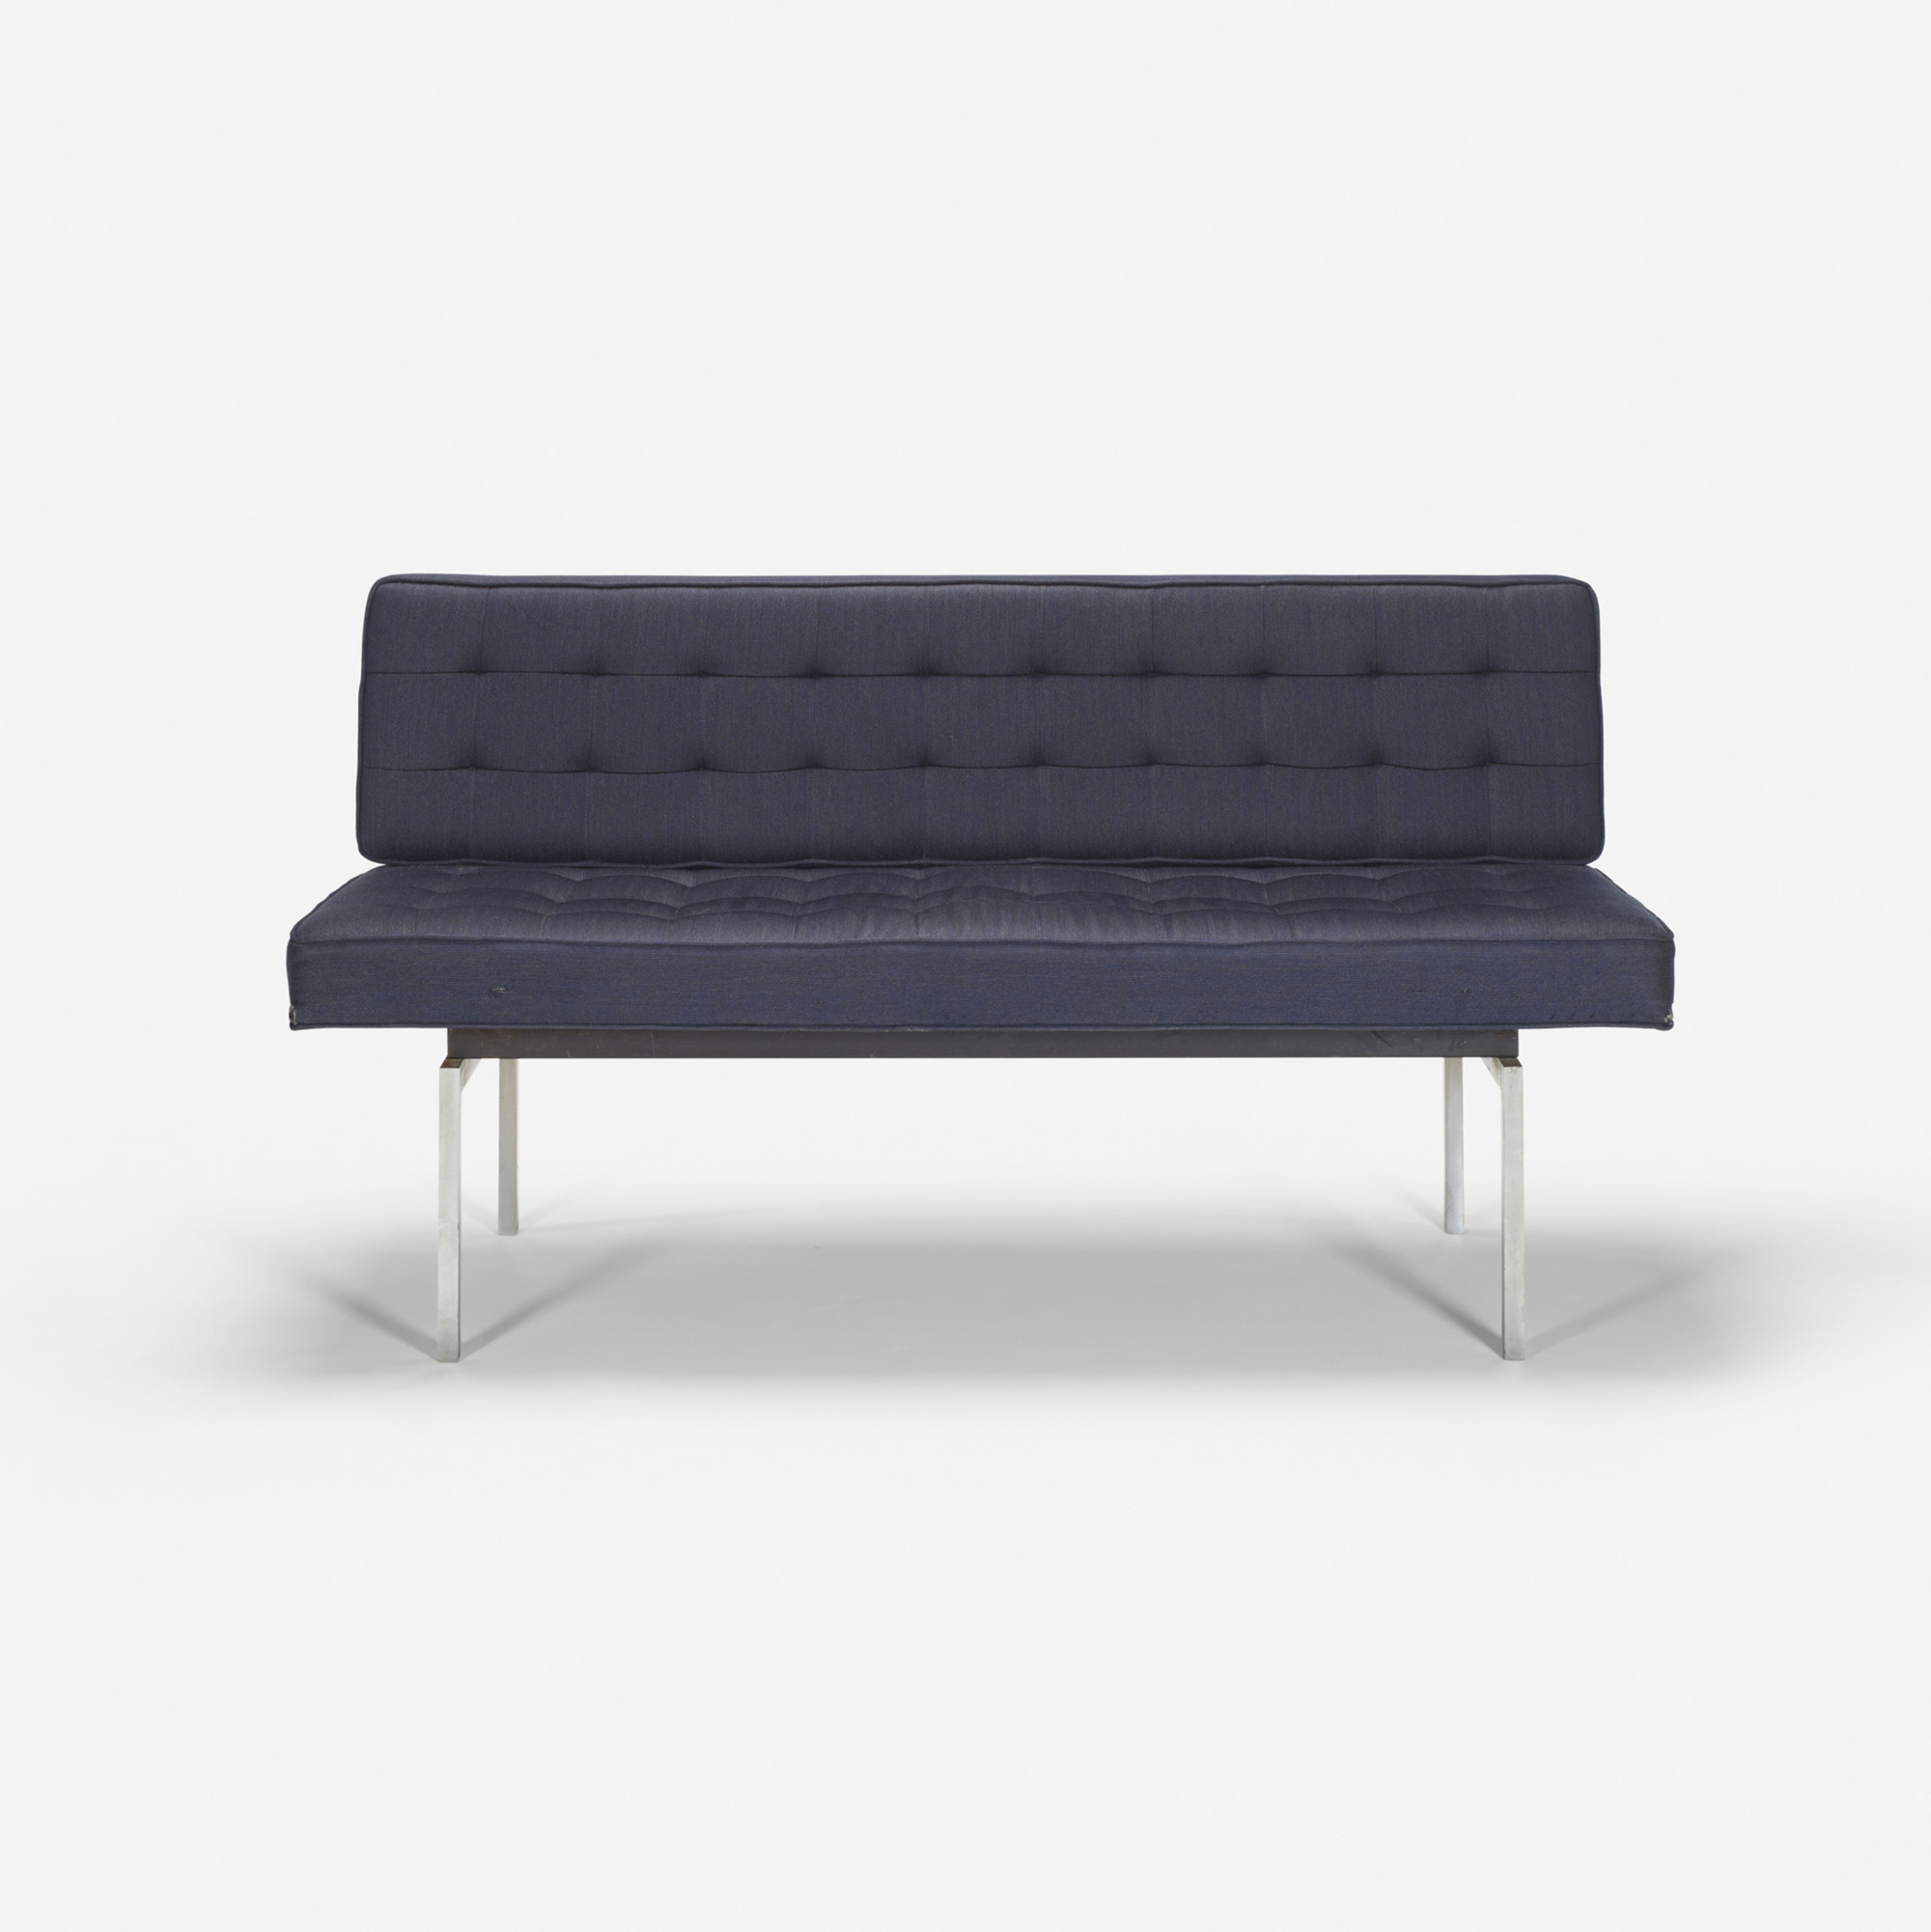 524: Philip Johnson Associates / Banquette 74 from the Pool Room (1 of 1)